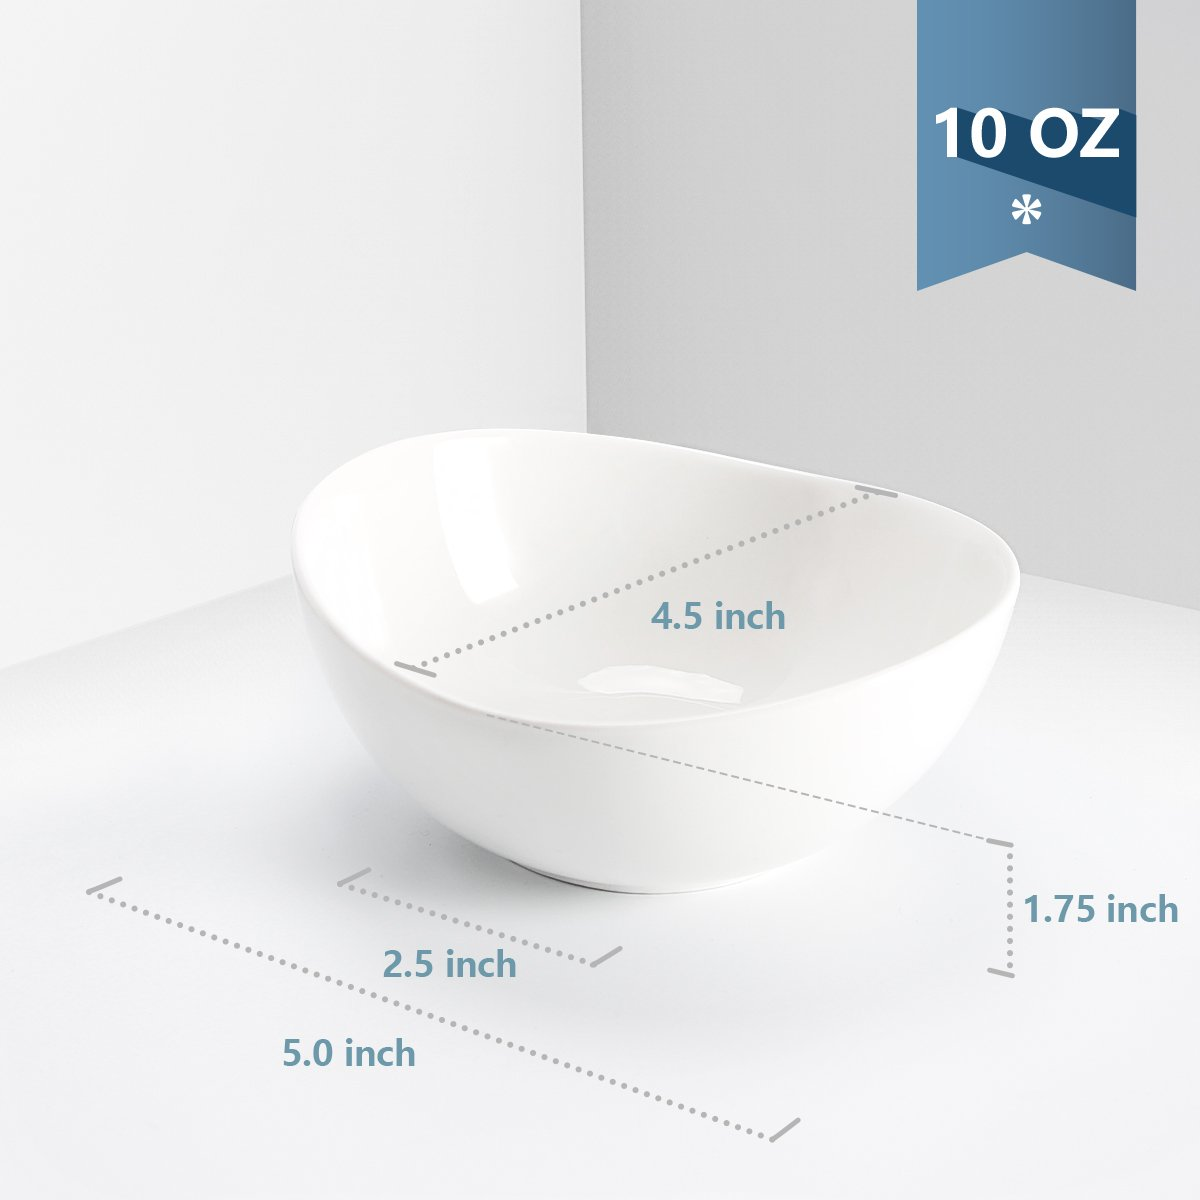 Sweese 1106 Porcelain Bowls - 10 Ounce for Ice Cream Dessert, Small Side Dishes - Set of 6, White by Sweese (Image #4)